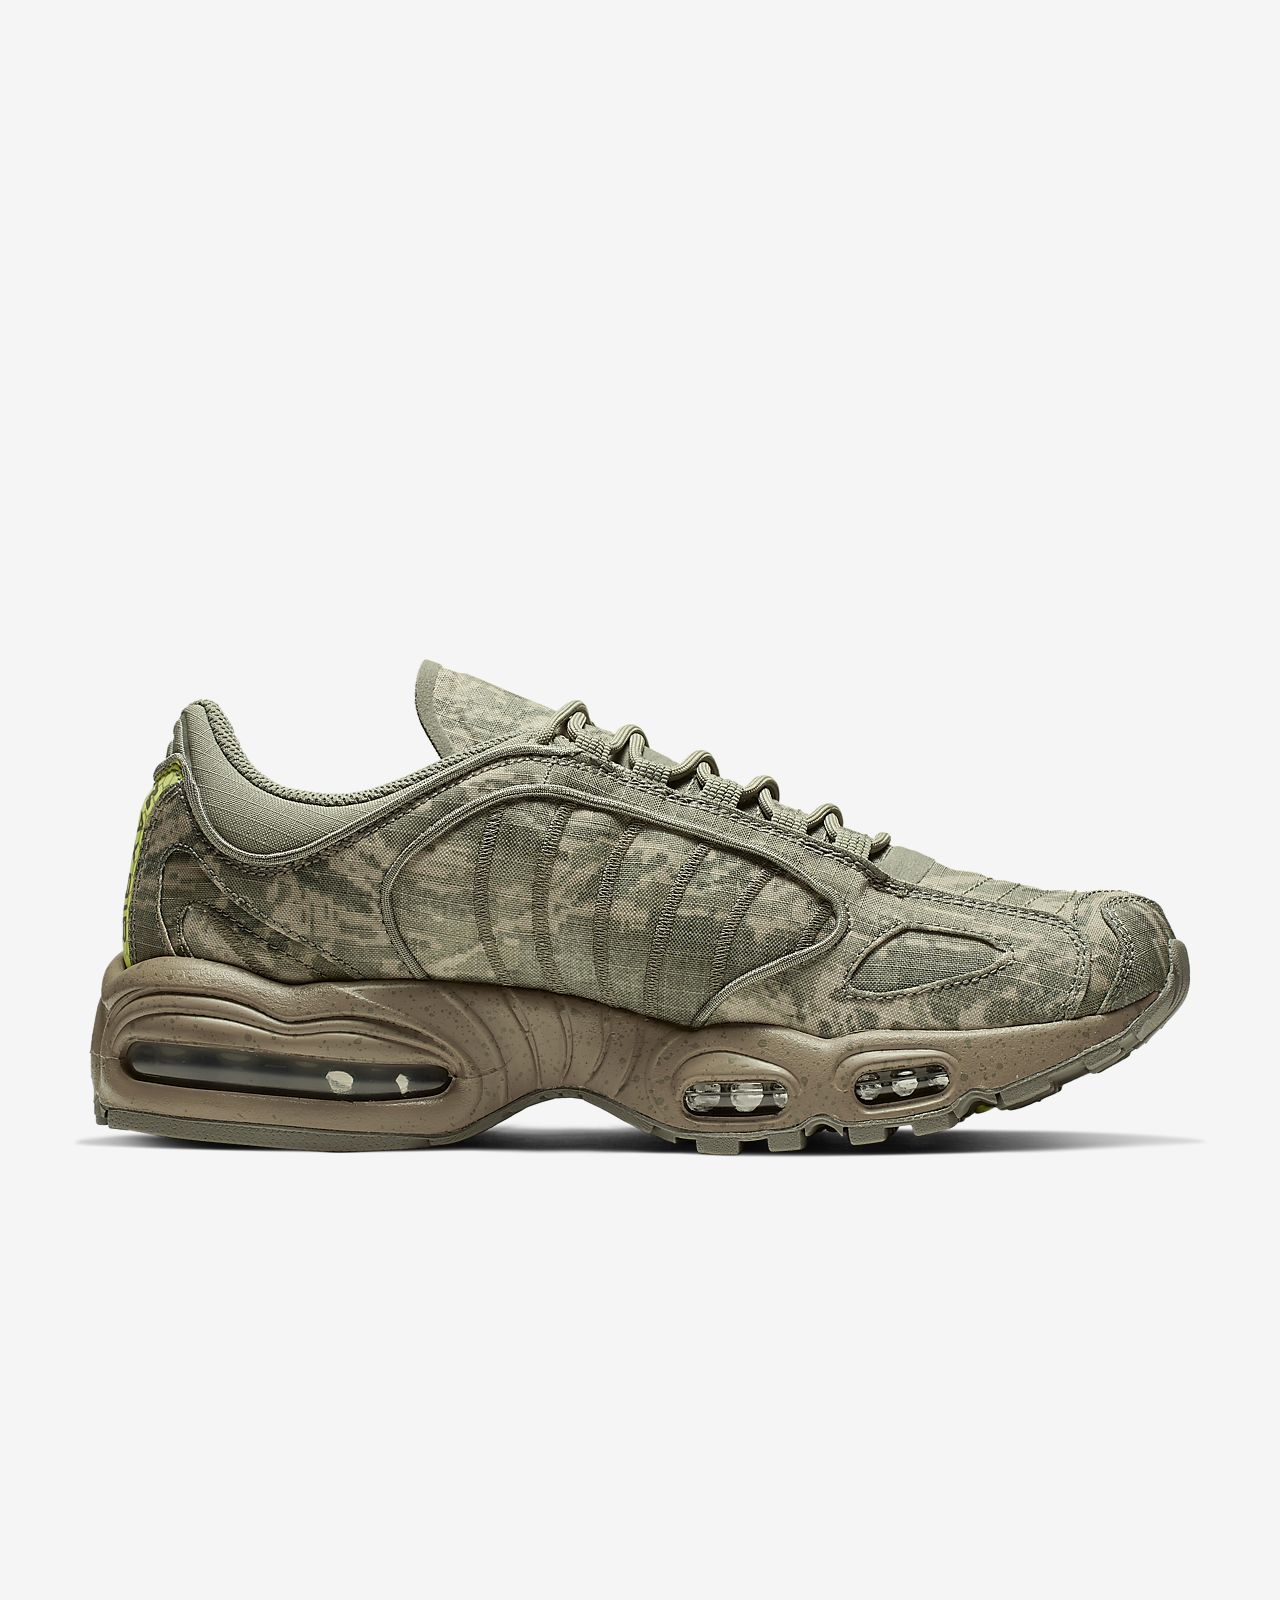 """Nike Air Max Tailwind IV SP /""""Digi Camo/"""" Men/'s Trainers All Sizes"""